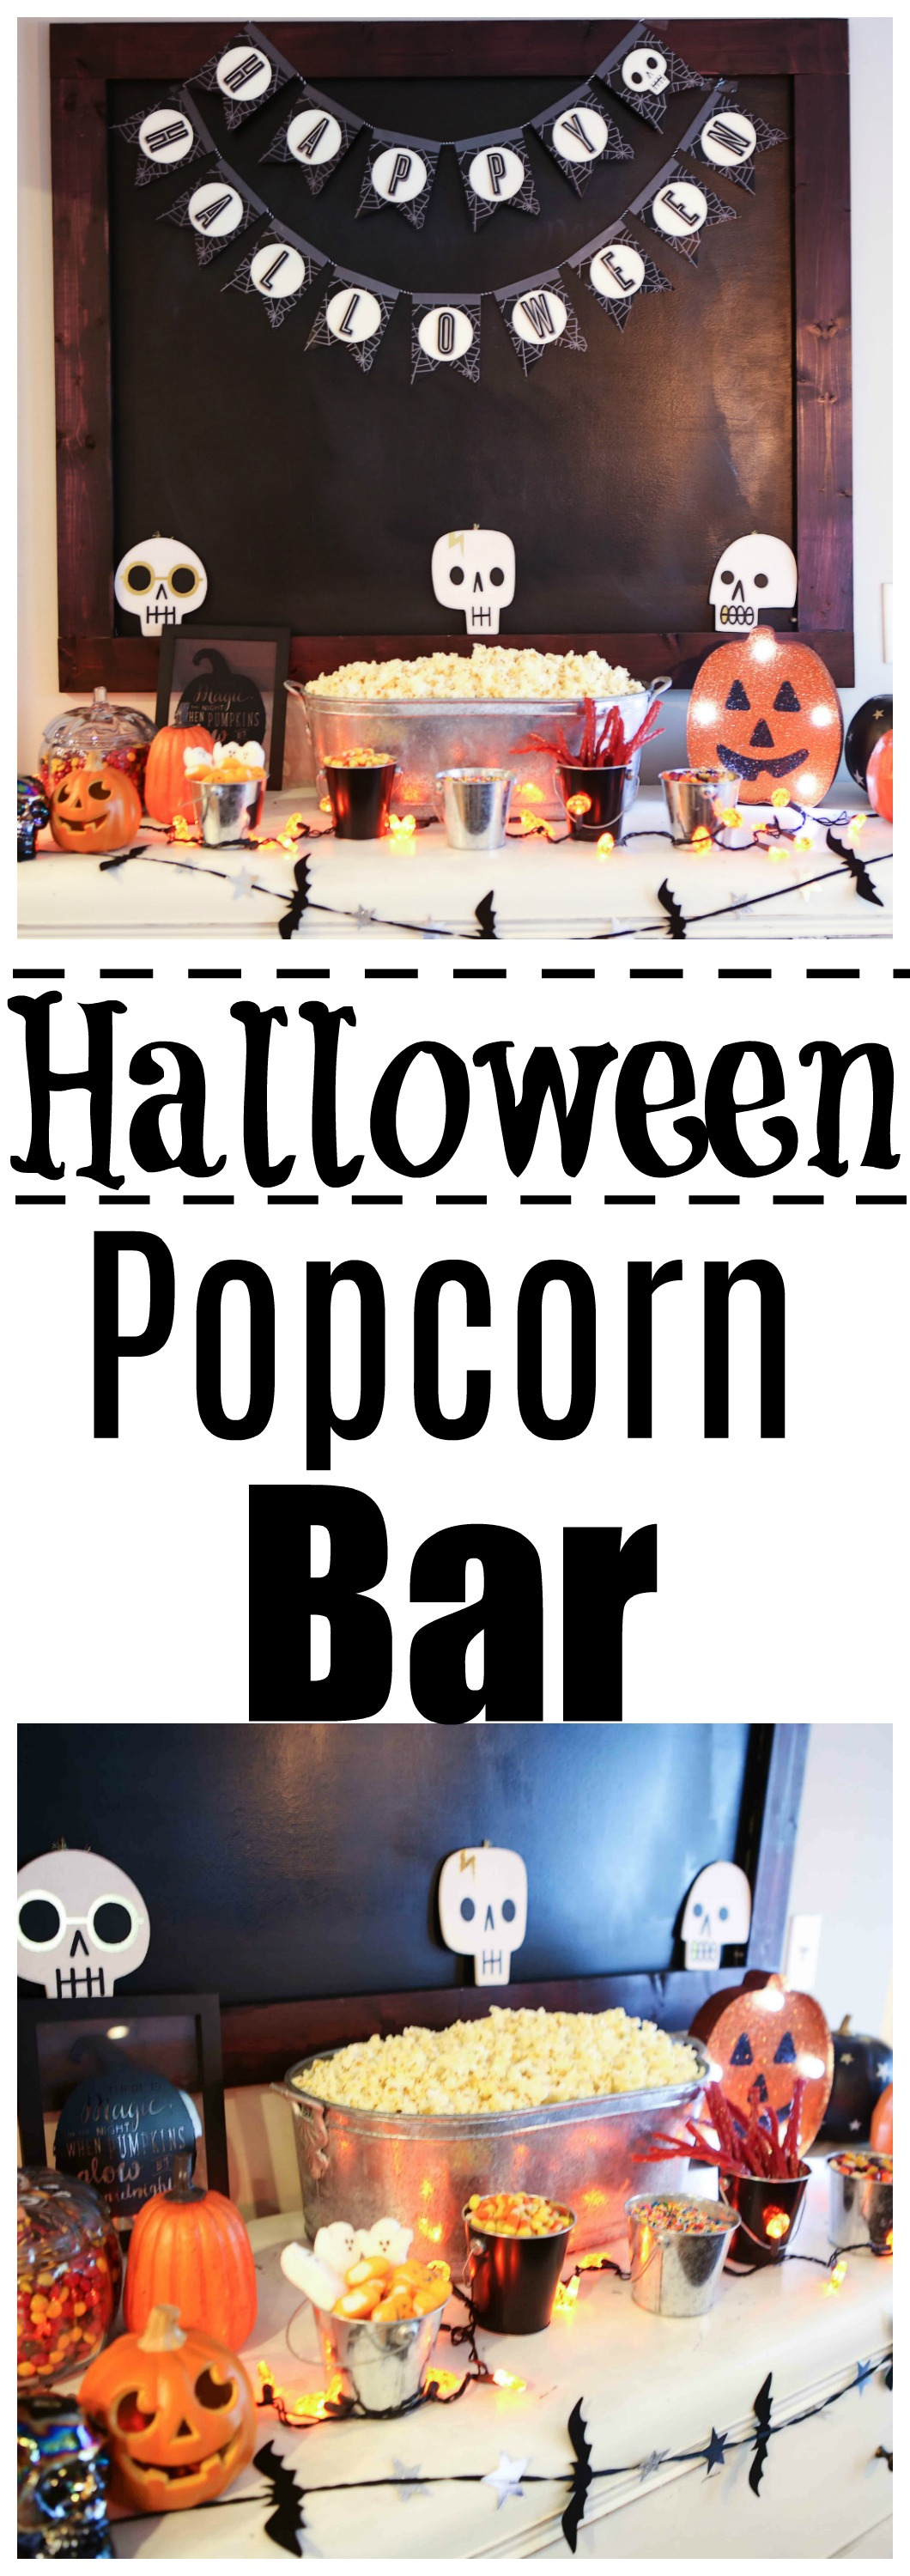 halloweenpopcornbar - Halloween Popcorn Bar by Atlanta lifestyle blogger Happily Hughes